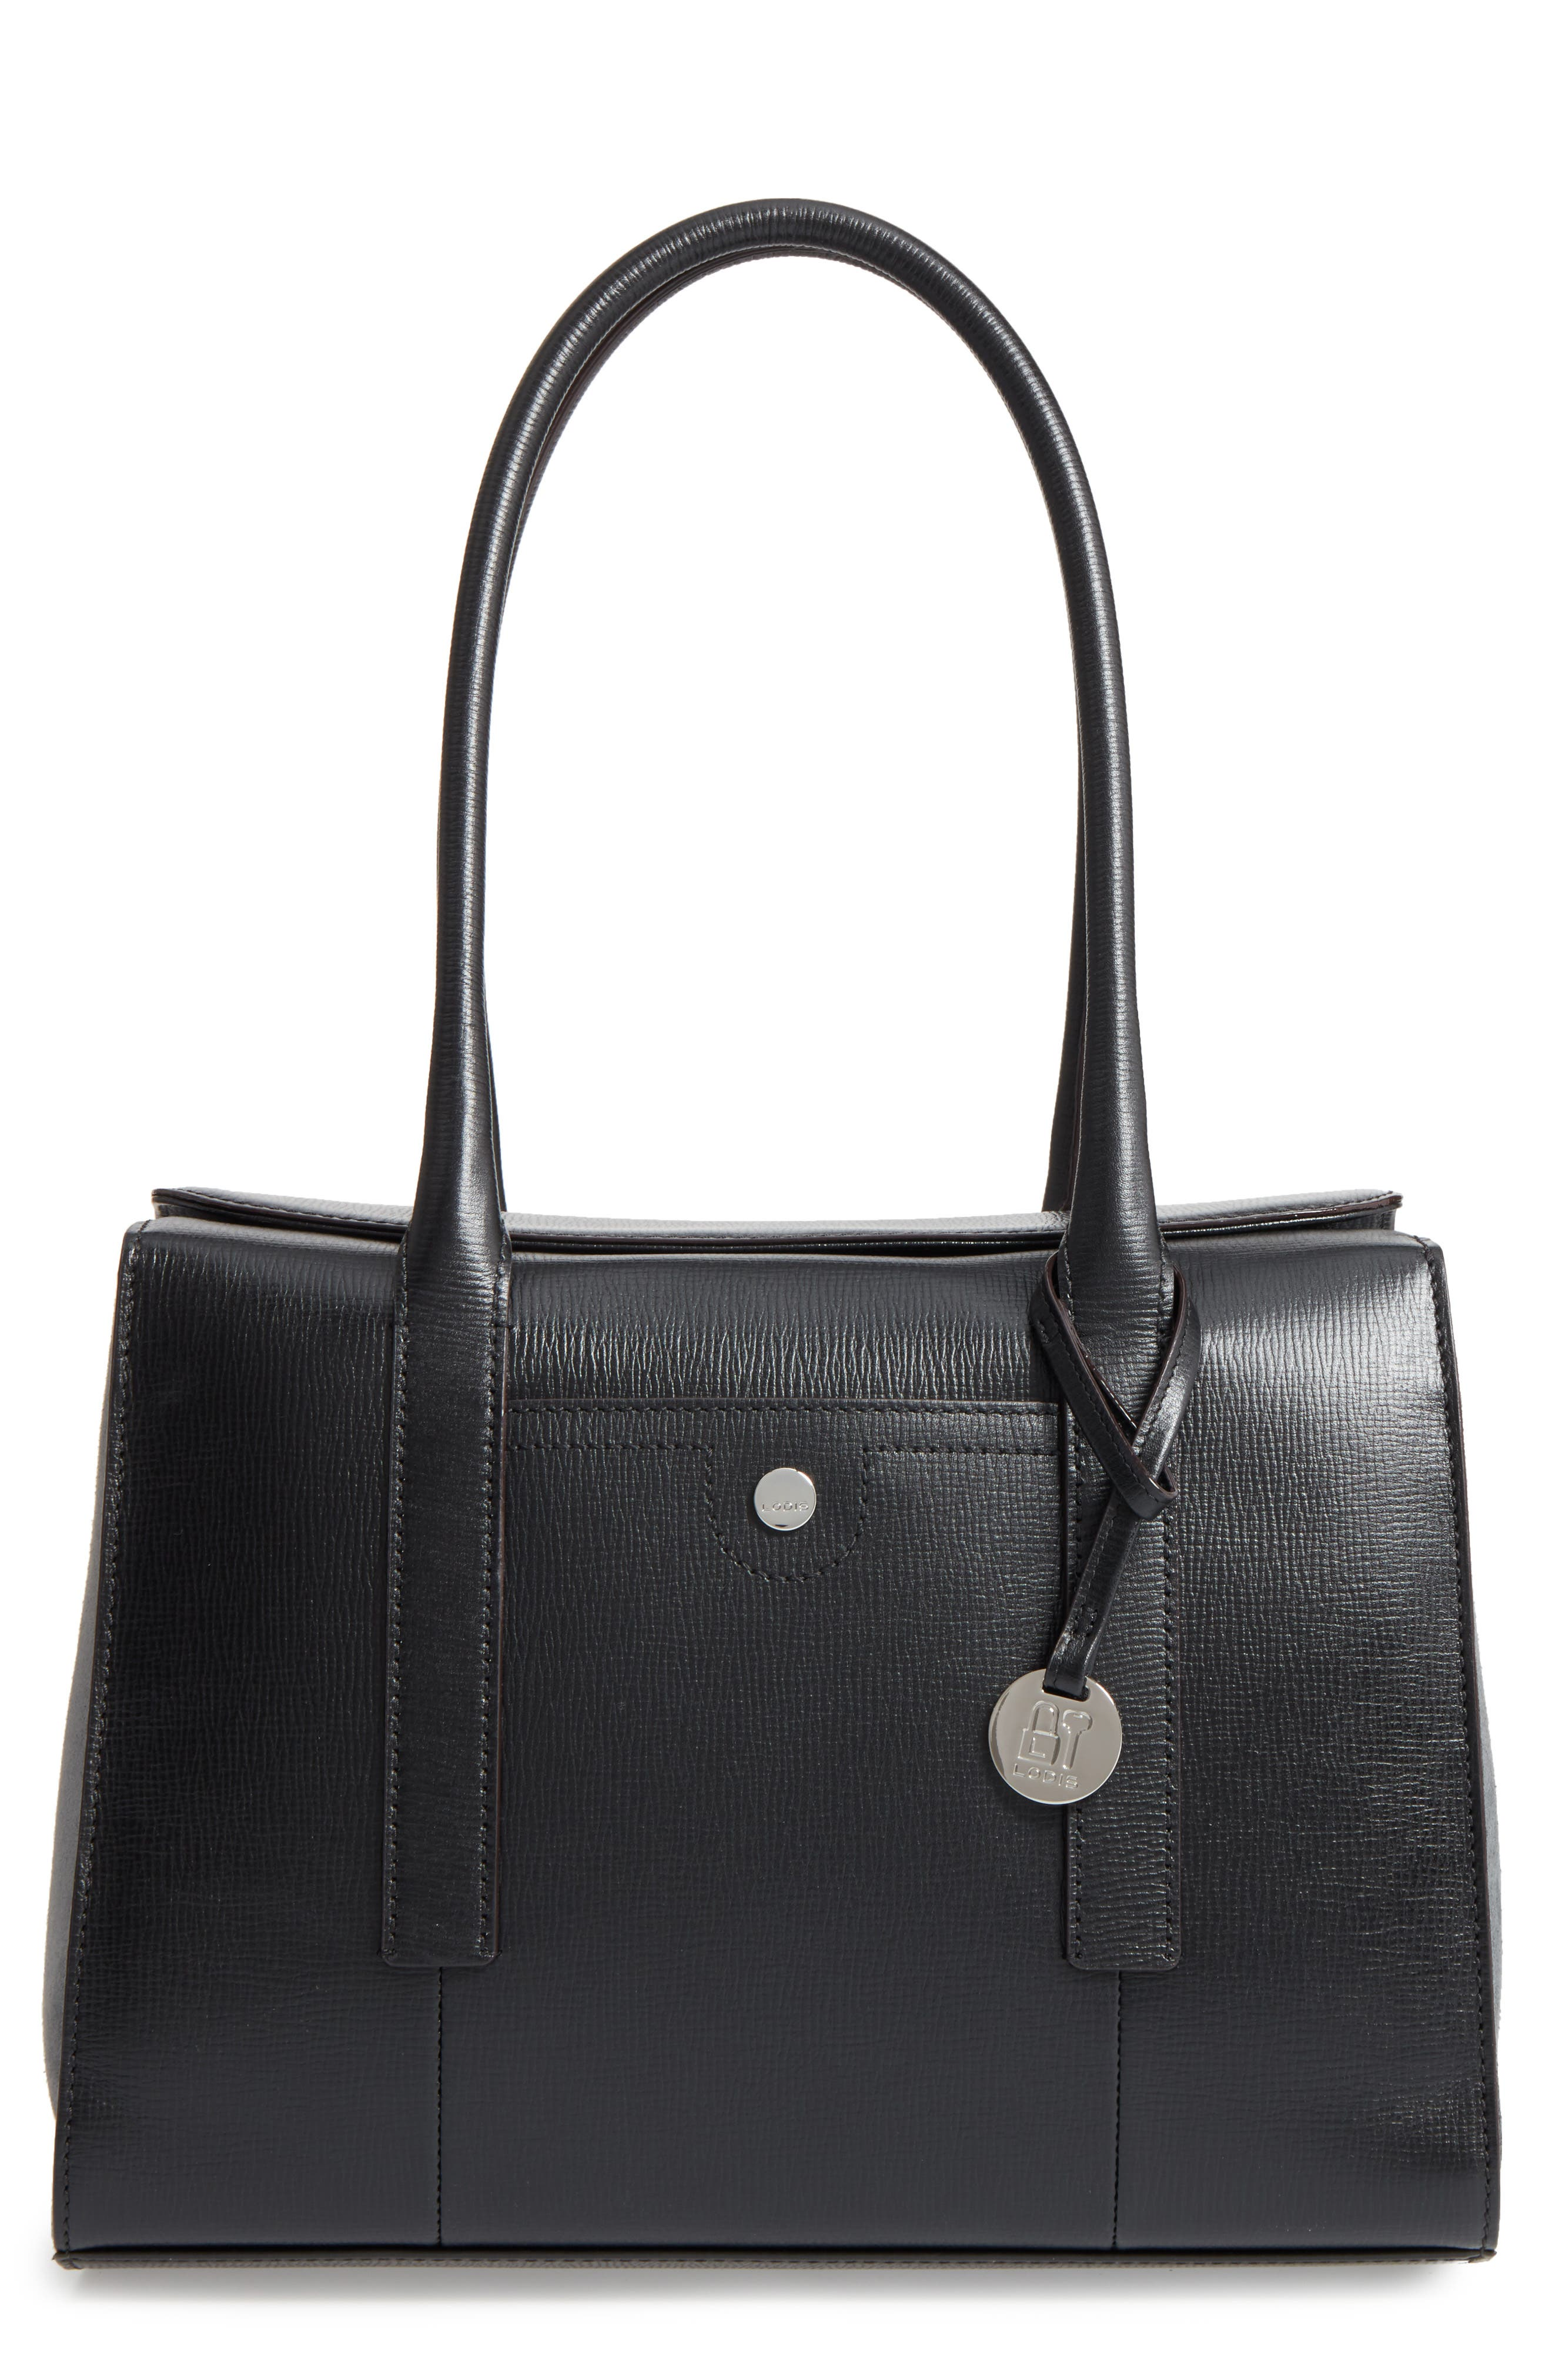 Business Chic Paula RFID-Protected Coated Leather & Suede Brief Shoulder Bag,                             Main thumbnail 1, color,                             Black